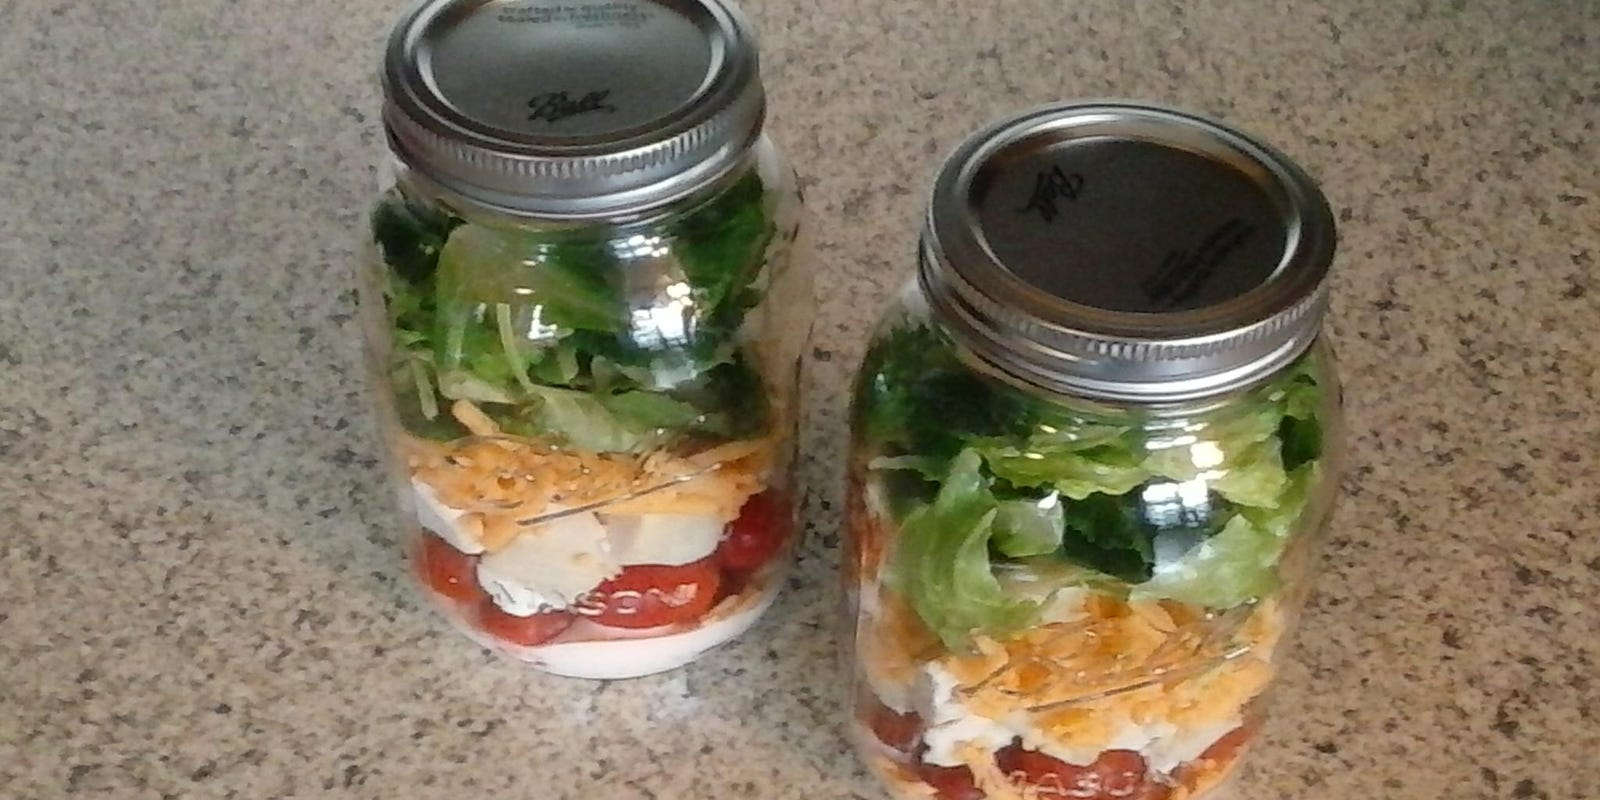 Ian Build A Better Jar Salad